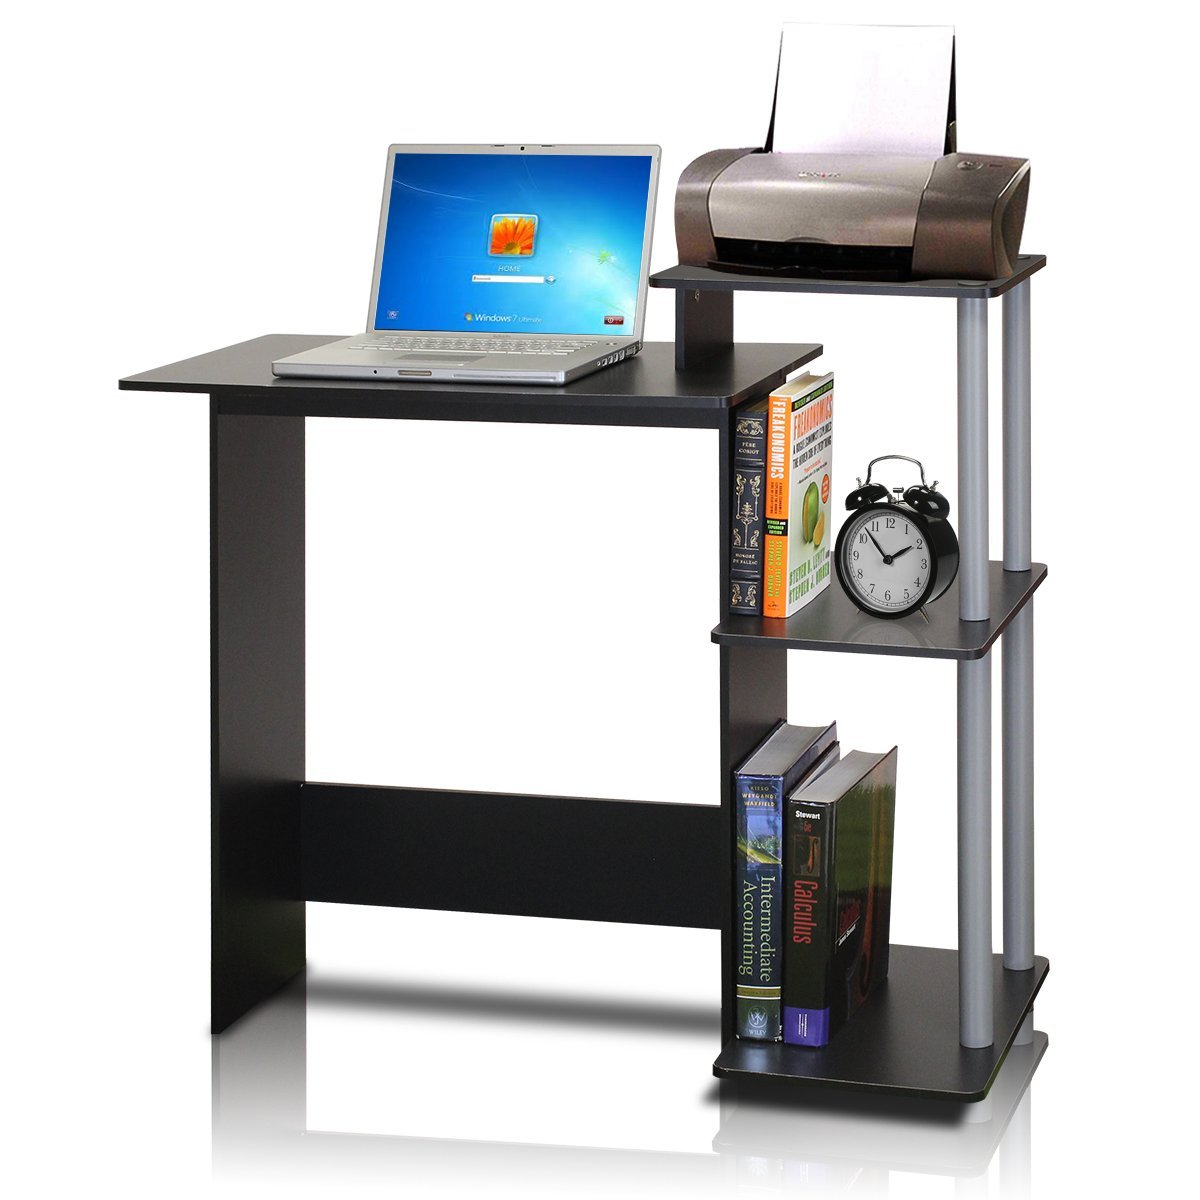 Furinno 11192BK/GY Efficient Computer Desk, Black/Grey by Furinno